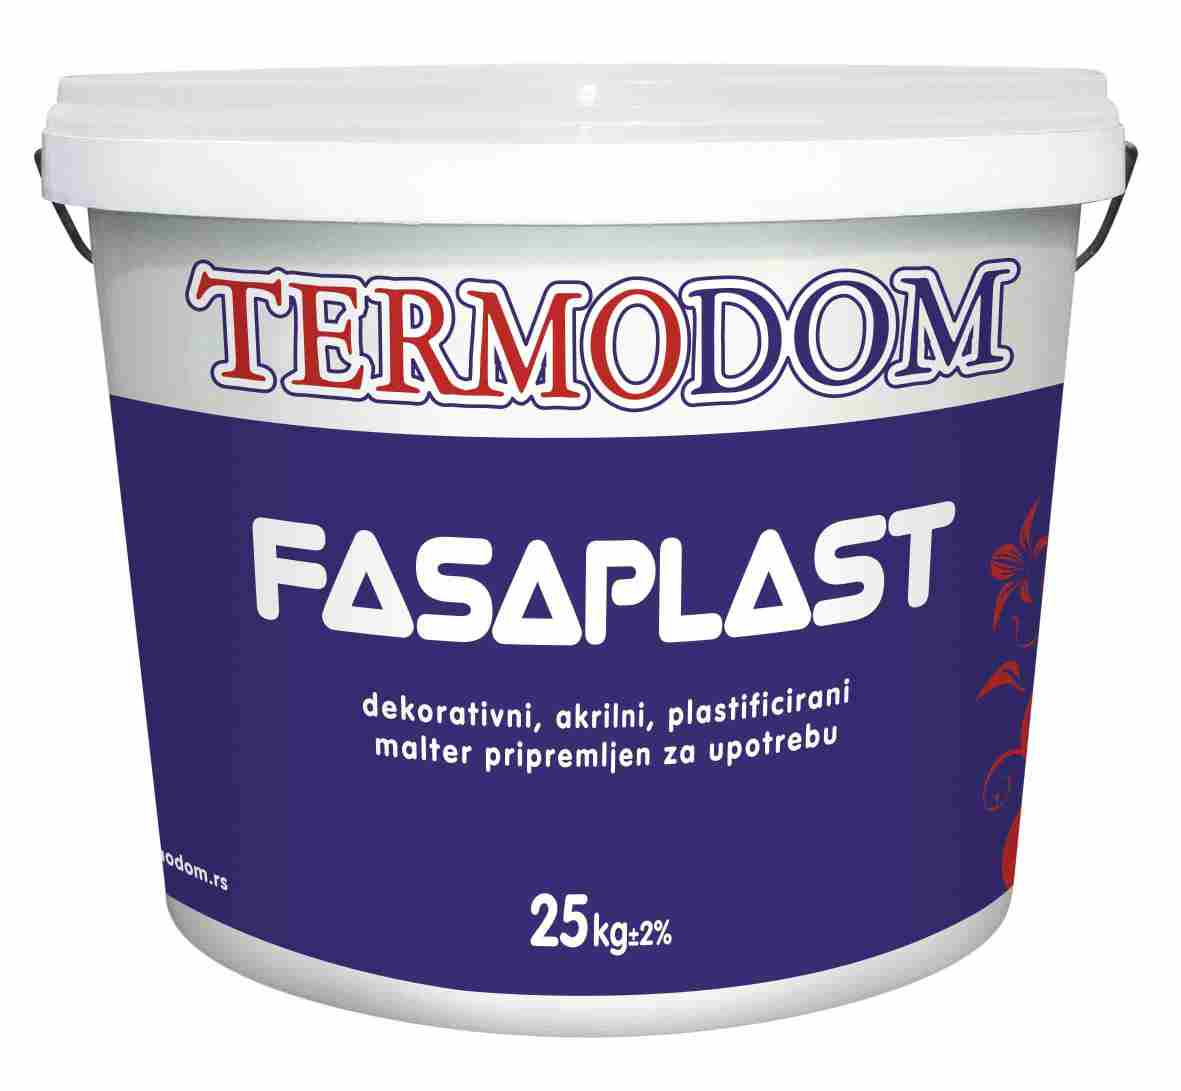 FASAPLAST FULL (puna str)  1,5 mm  Beli   25/1kg